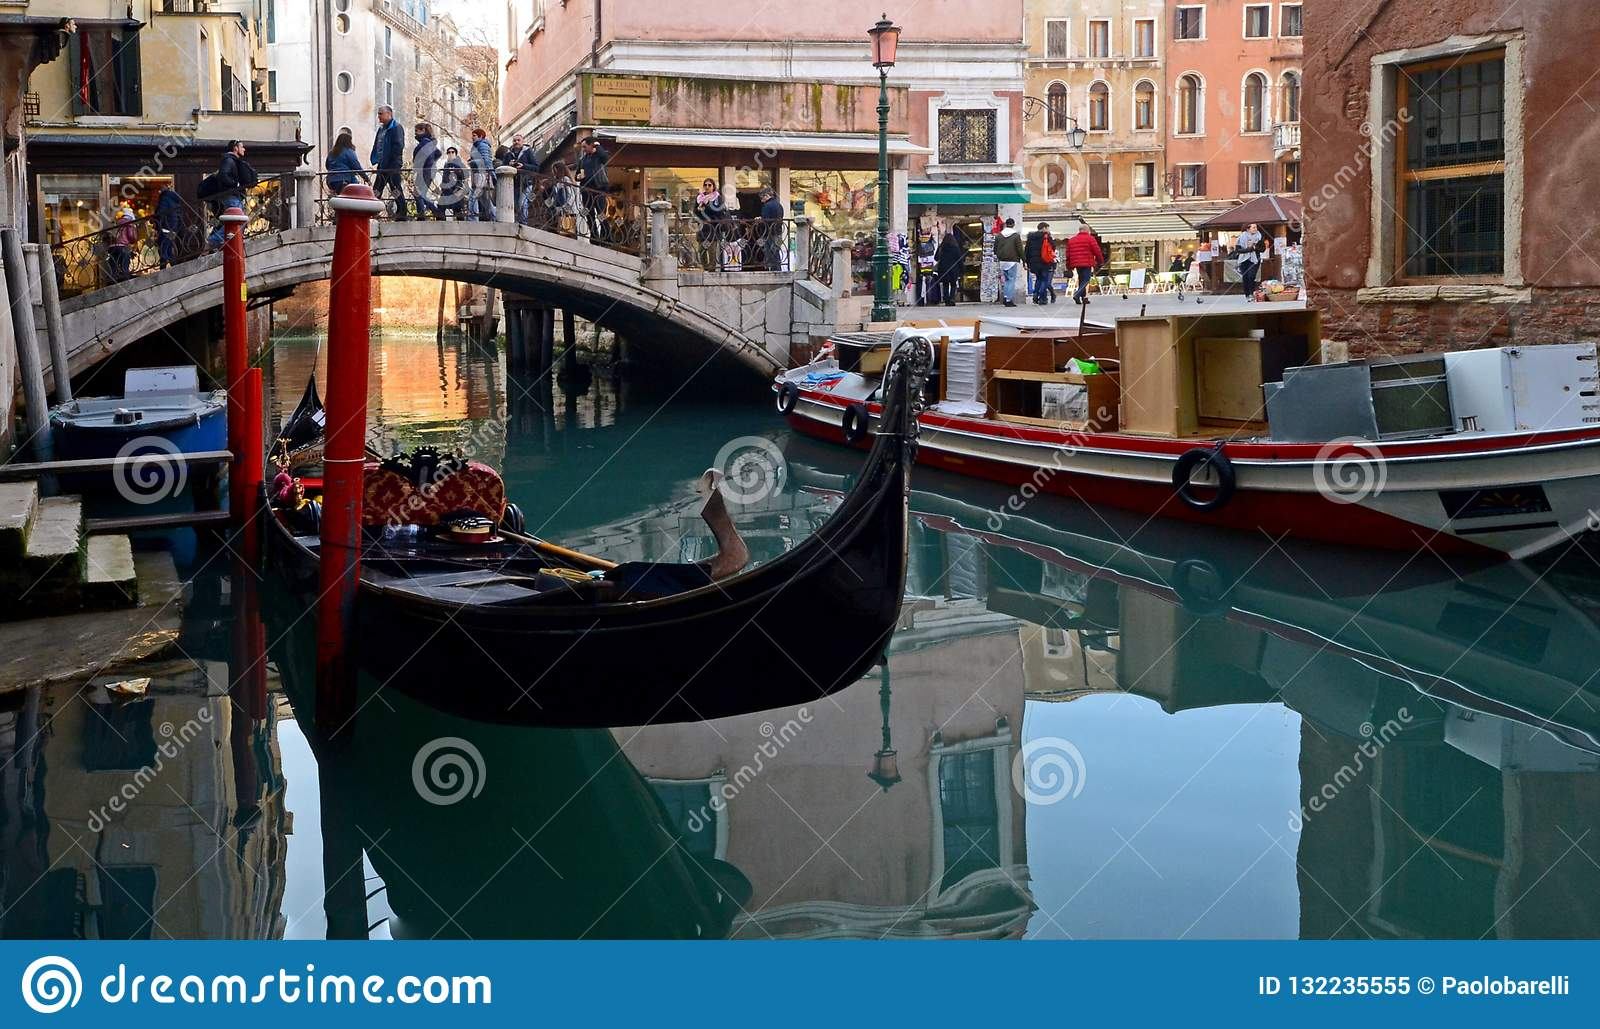 A stretch of a canal in Venice with boats and colorful buildings on a sunny winter day